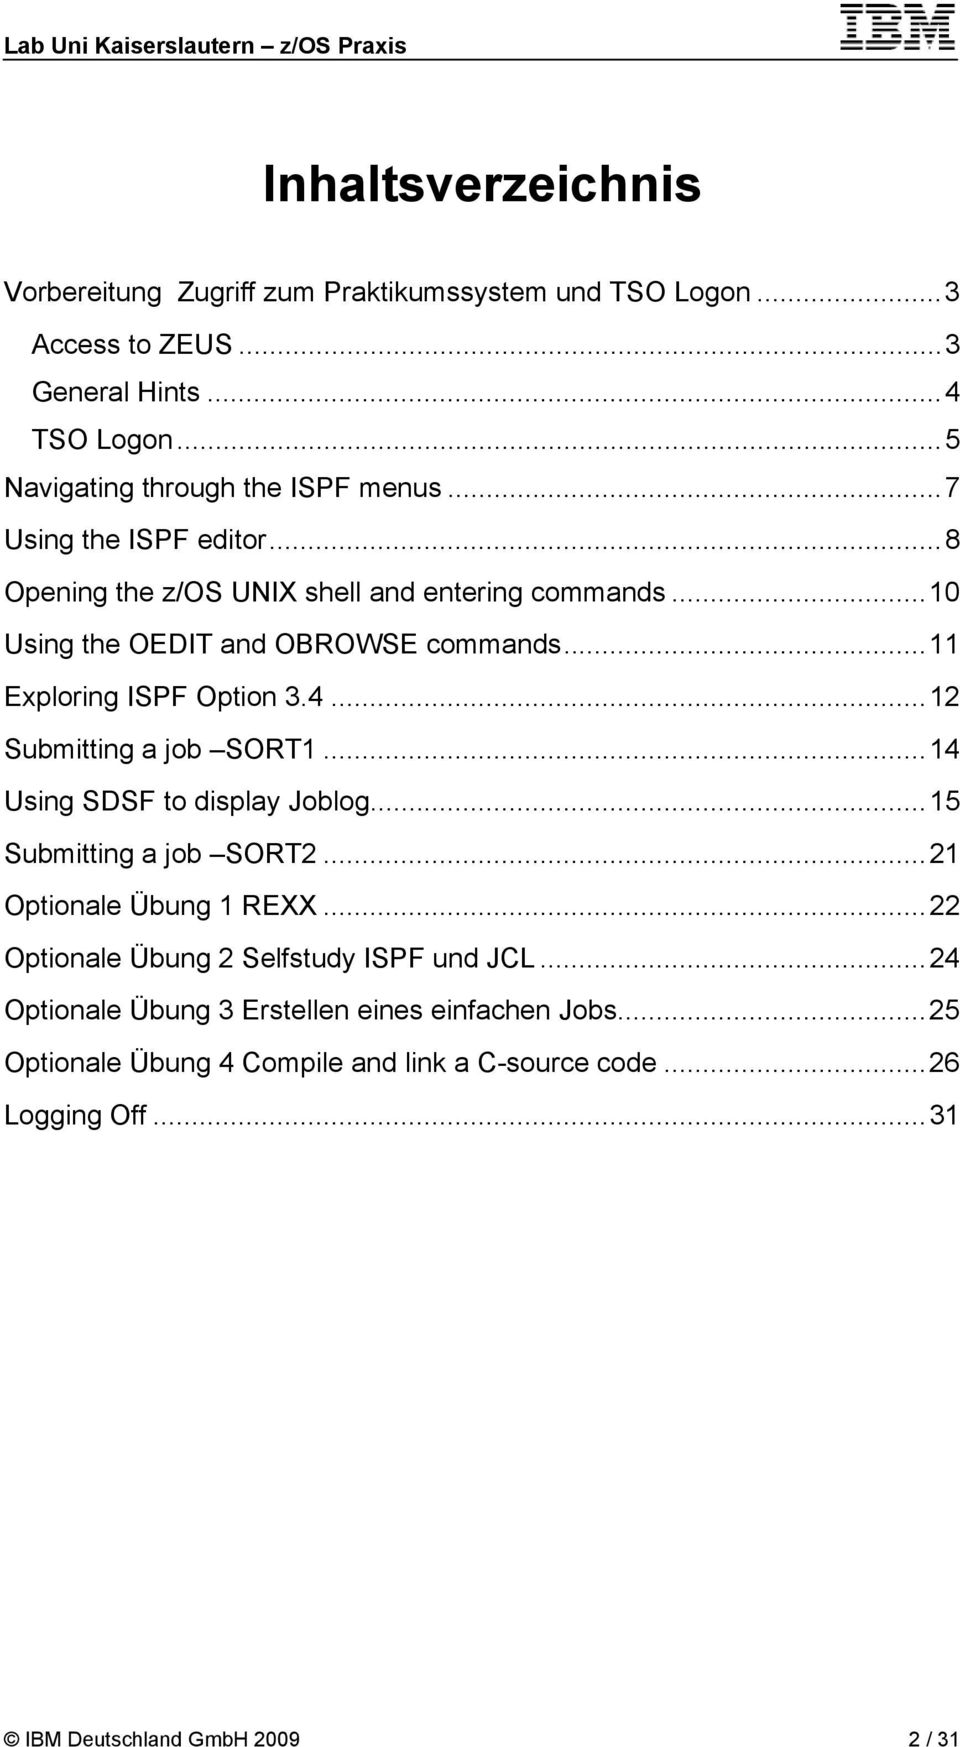 .. 12 Submitting a job SORT1... 14 Using SDSF to display Joblog... 15 Submitting a job SORT2... 21 Optionale Übung 1 REXX.